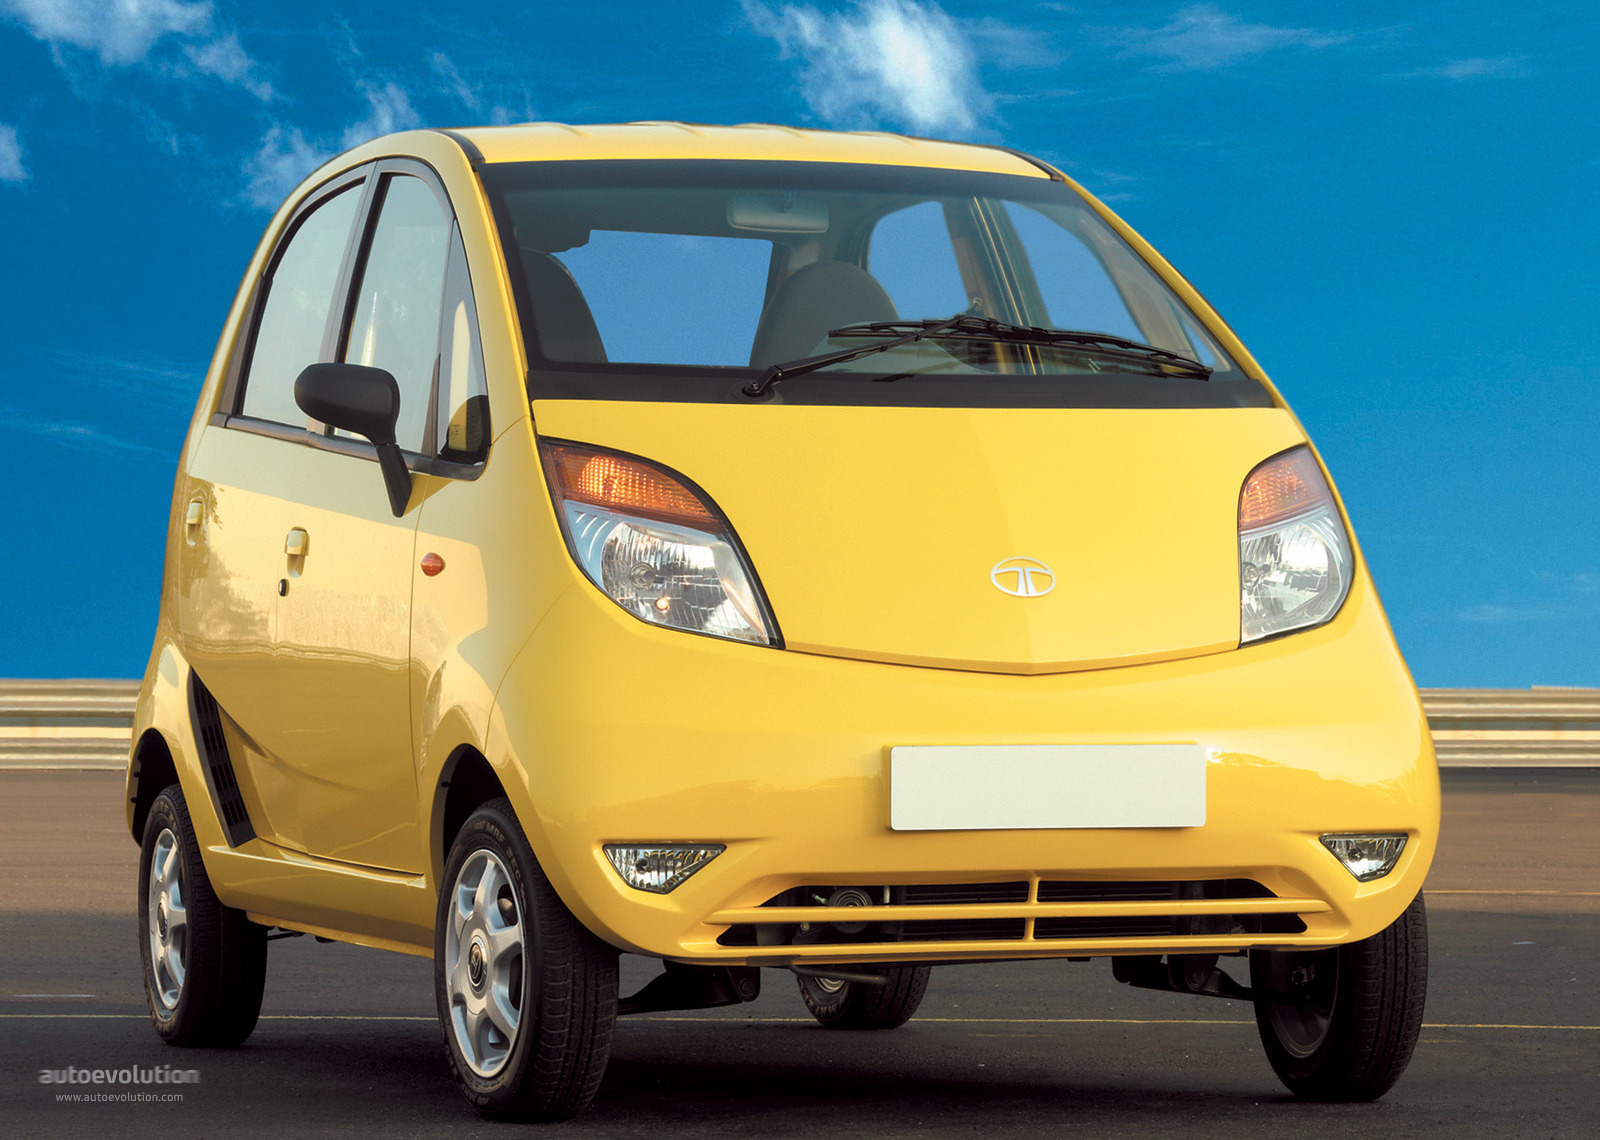 tata nano in usa Used tata nano cars in mumbai find good condition second hand tata nano in mumbai for sale great deals on old nano cars in mumbai at carwale  tell us your city to help us find the right cars.